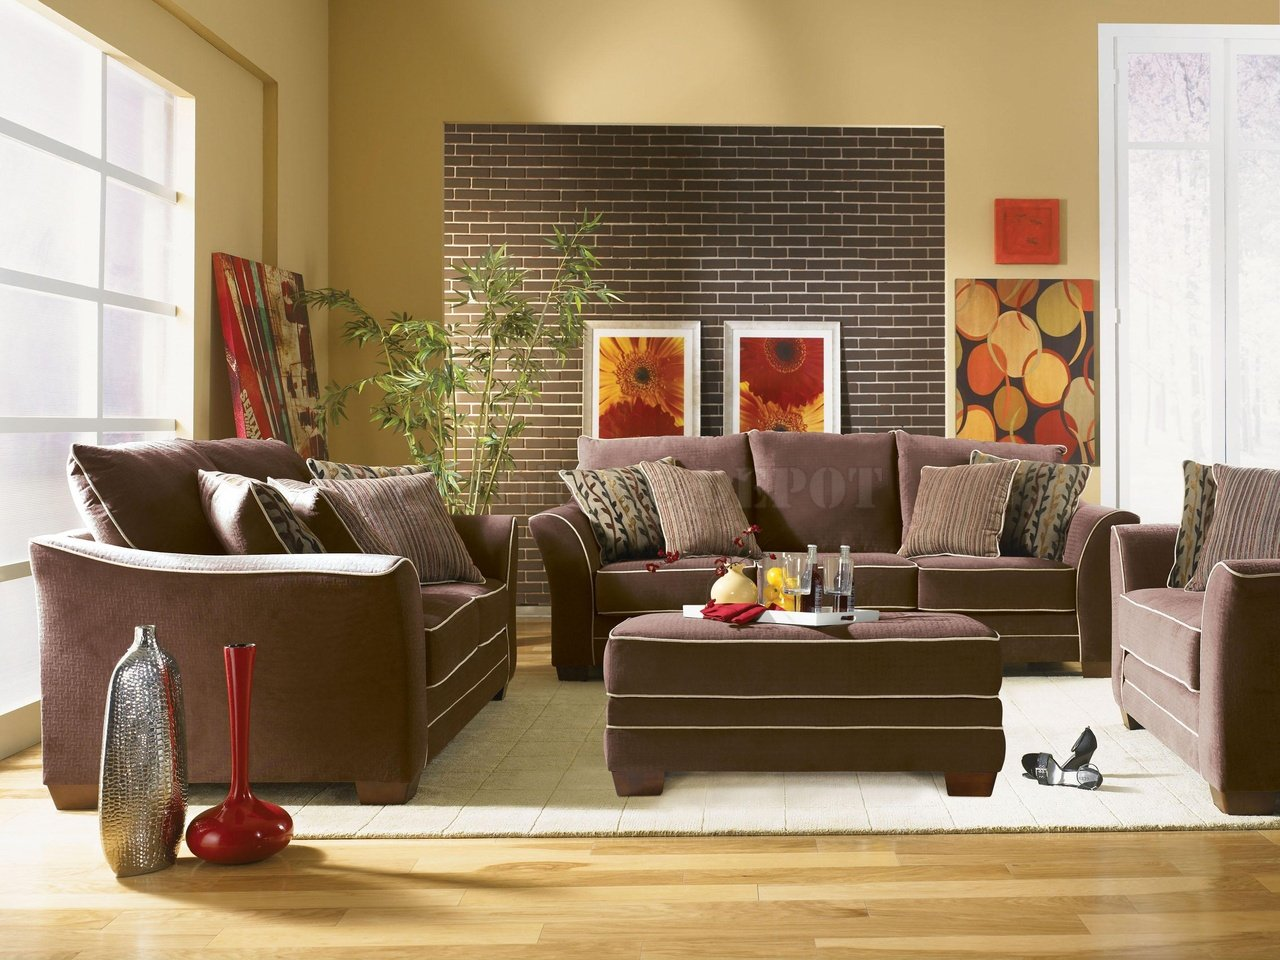 Interior design ideas interior designs home design ideas for Living room ideas furniture